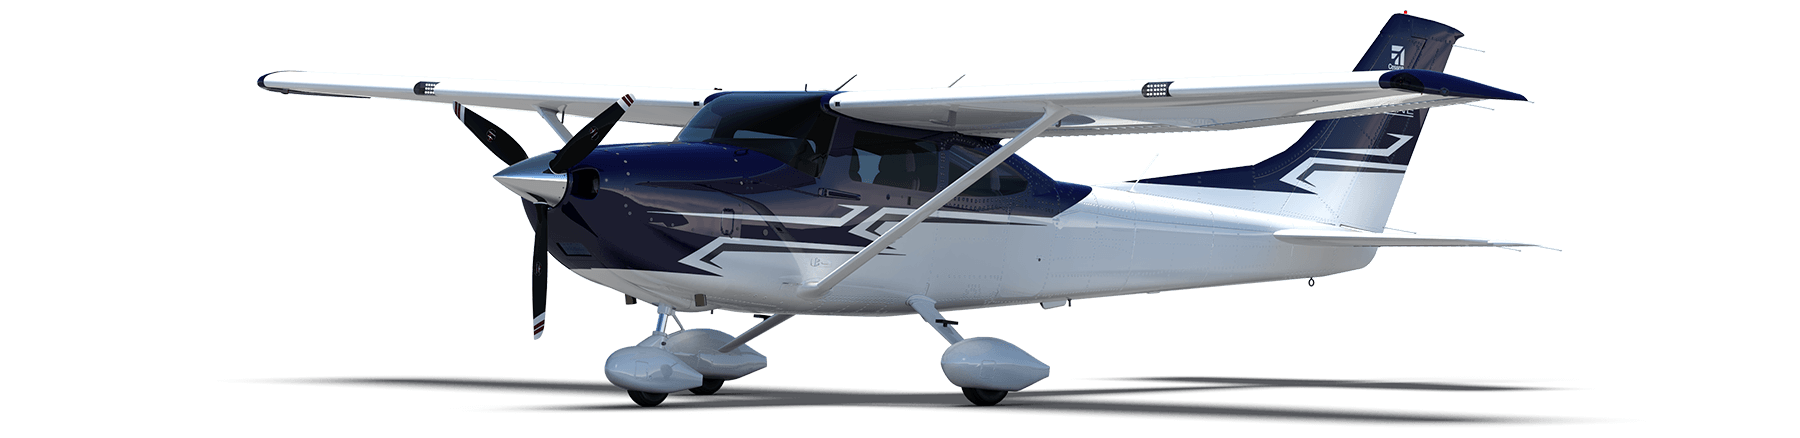 Cessna Skylane 152 Navigation Light Wiring Diagram Move Your Mouse Over The Image To Pause